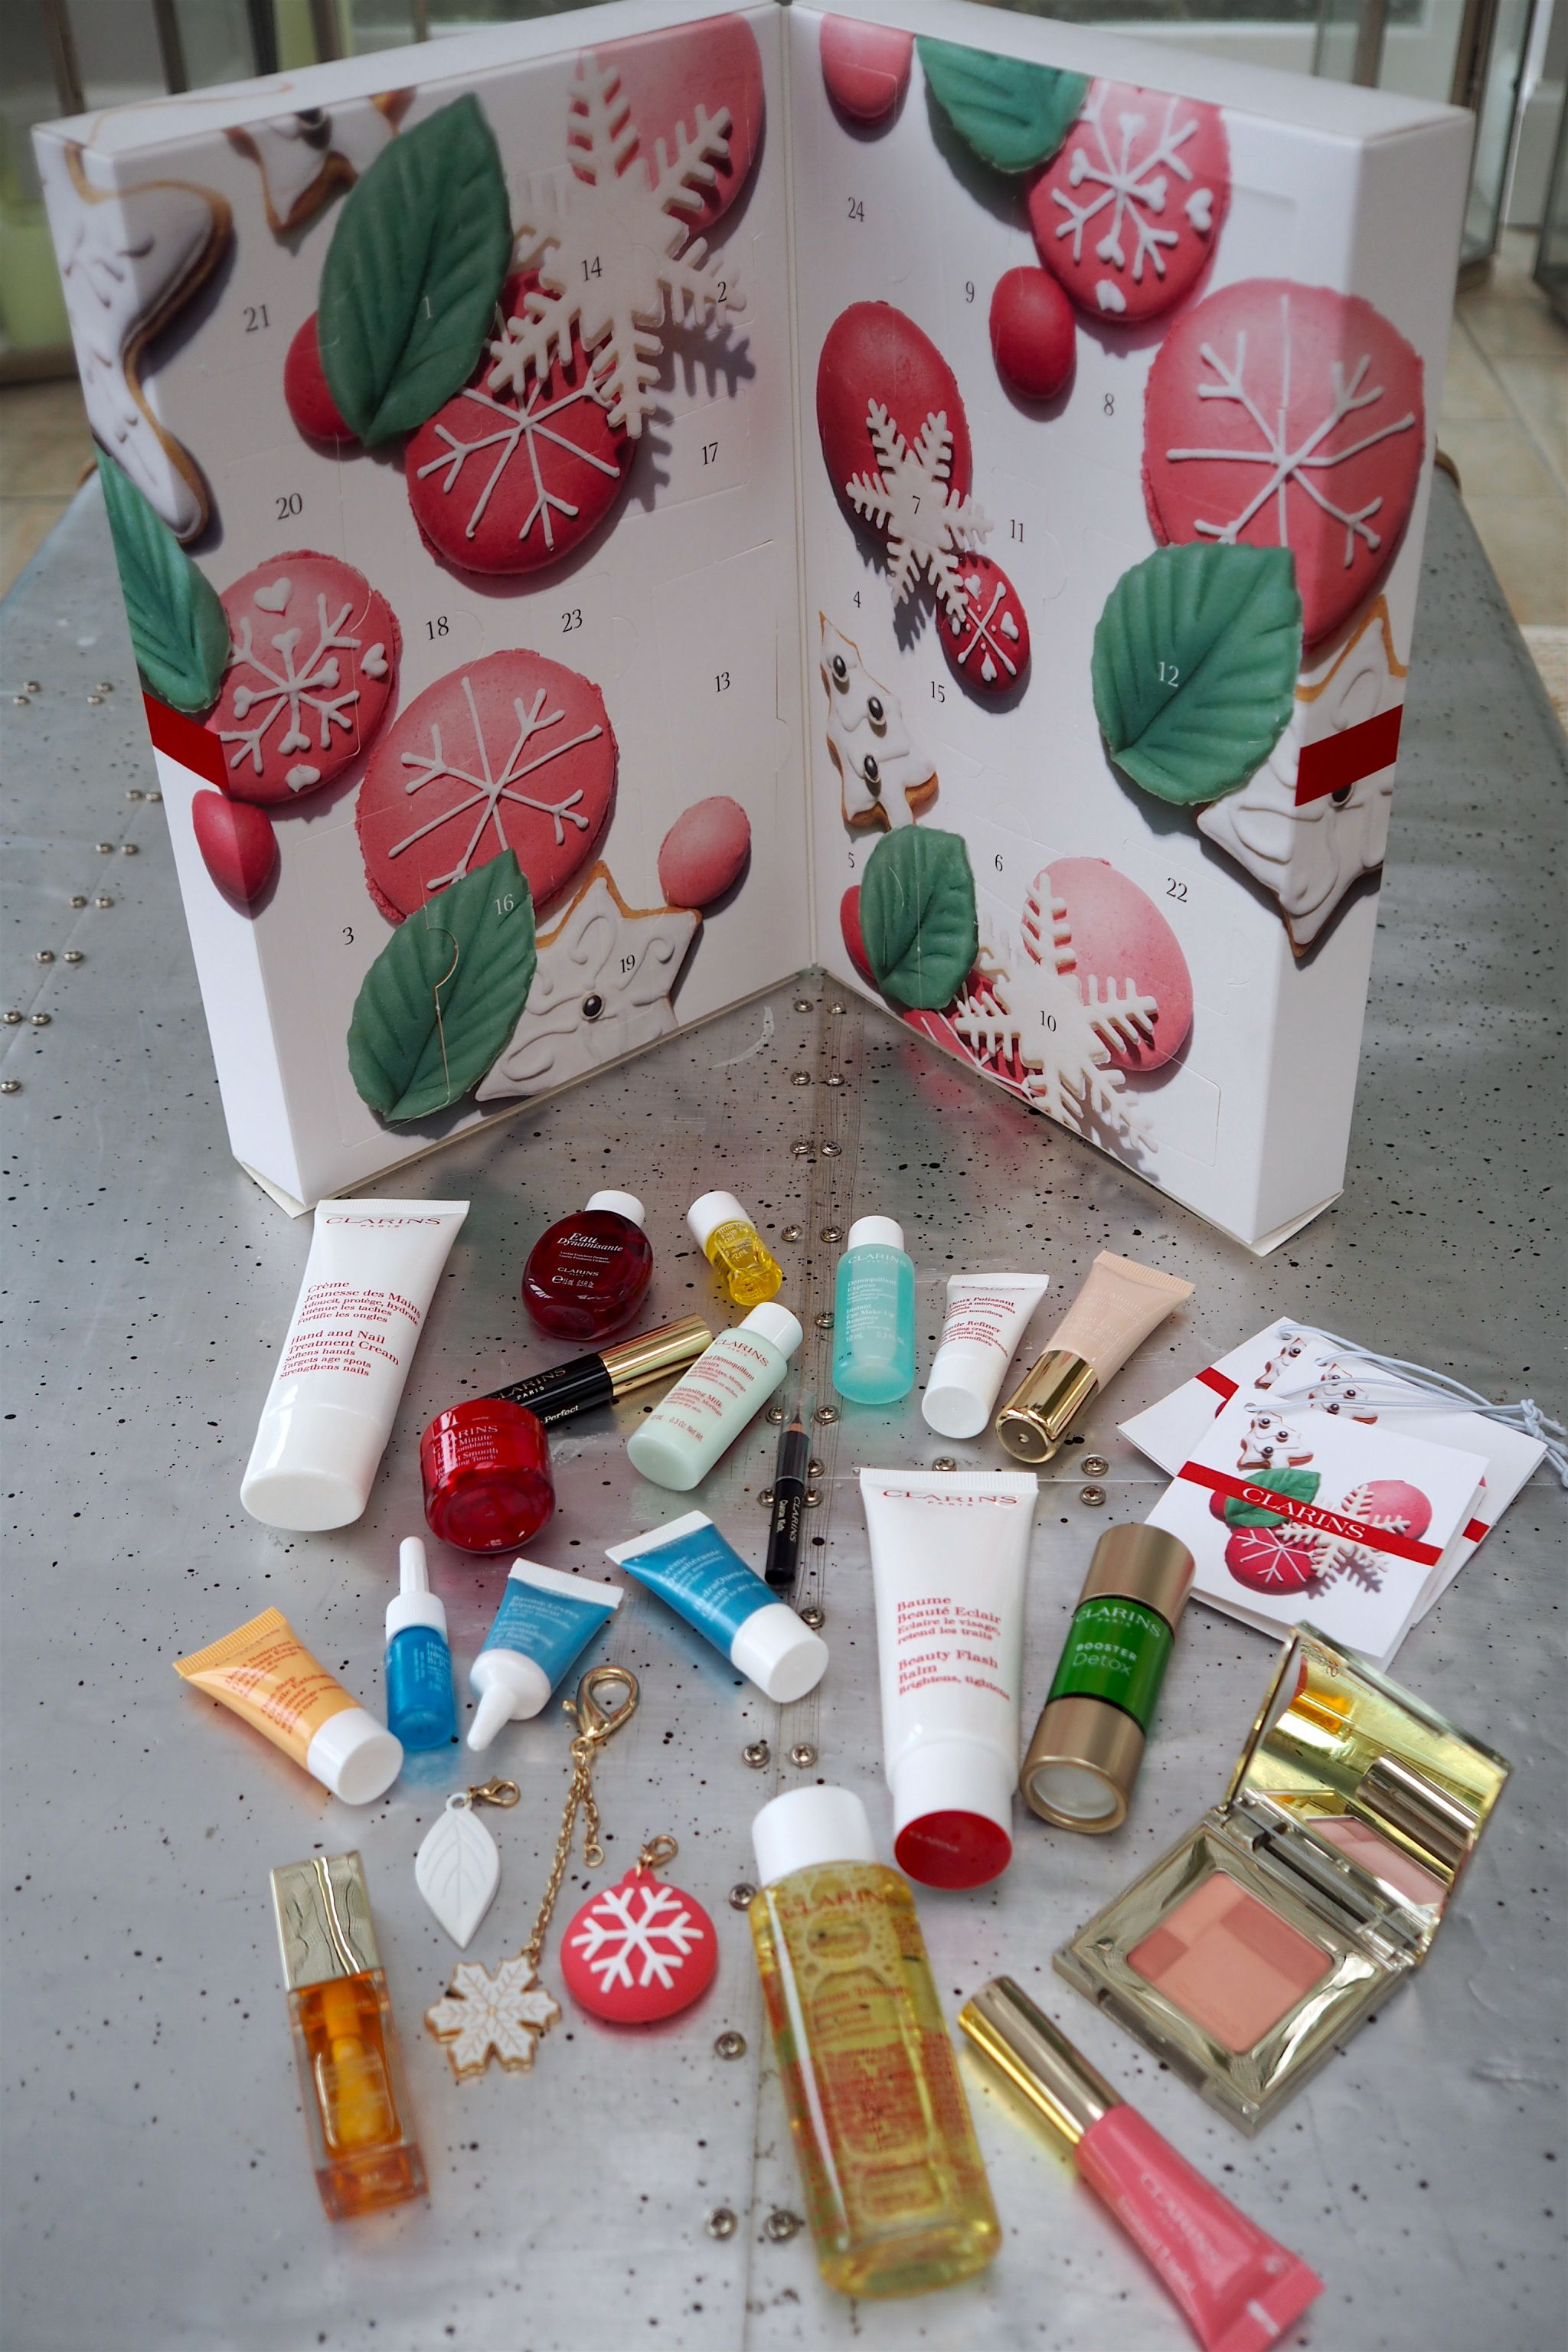 clarins_advent_calendar_3